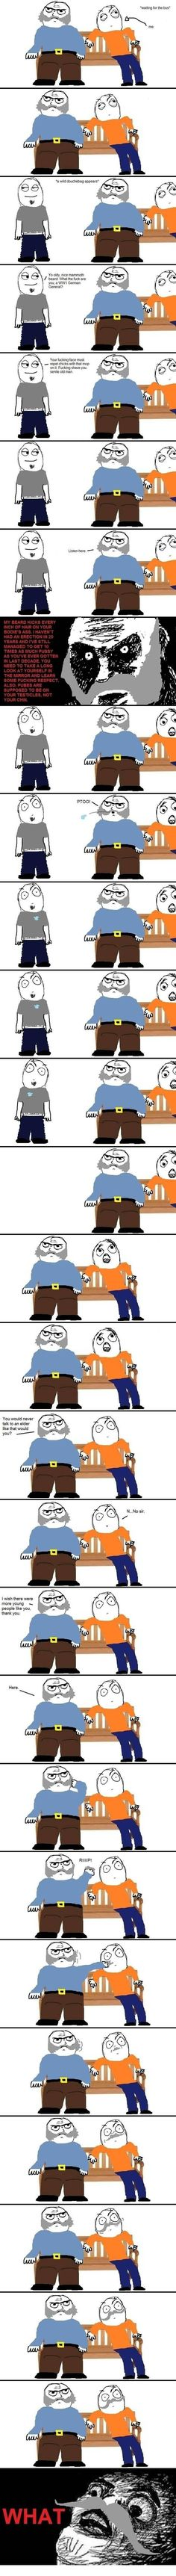 This now my favorite rage comic of all time